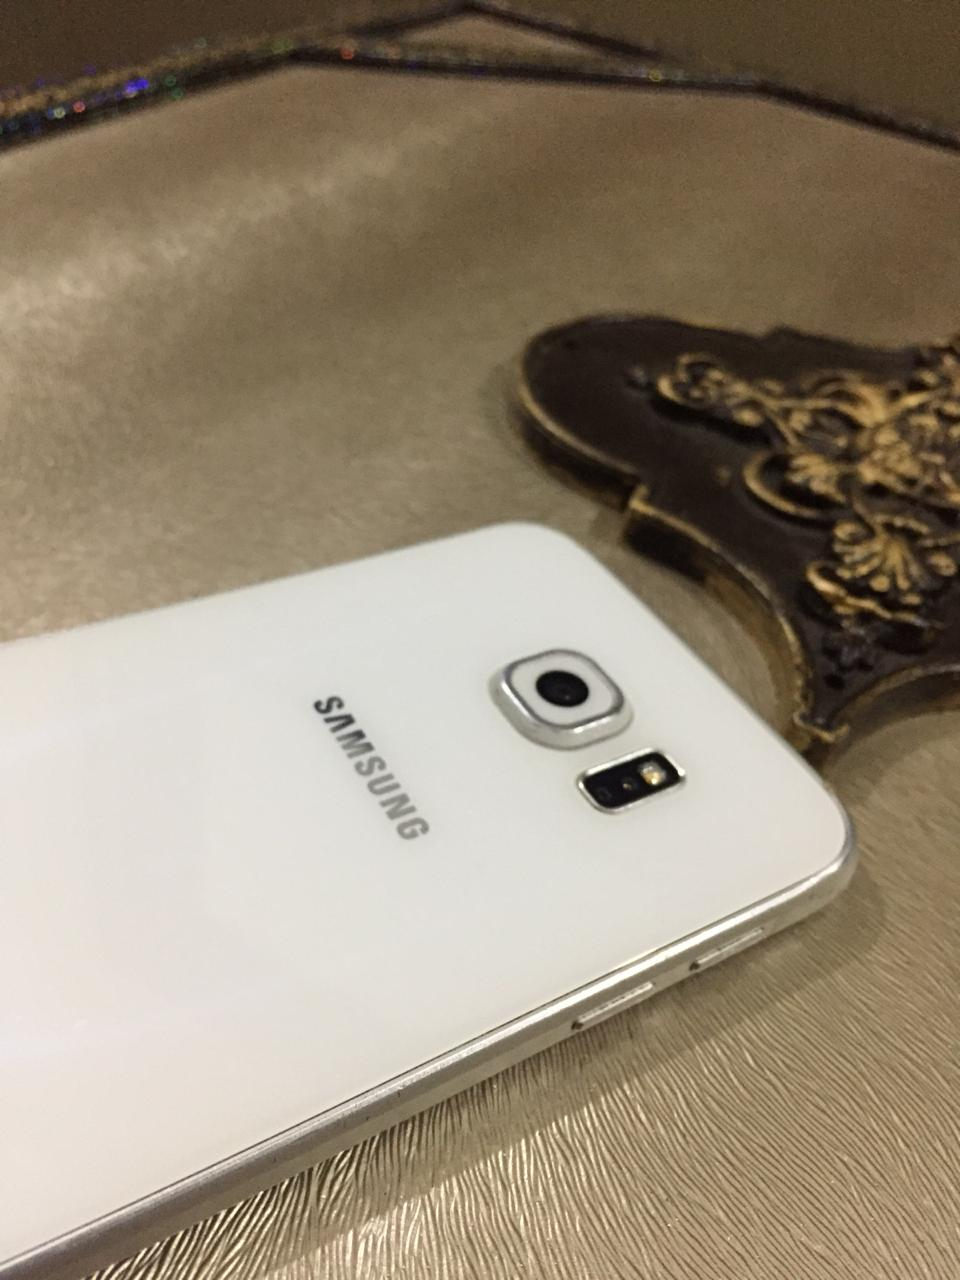 Samsung Galaxy S6 100% Working. CRYSTAL CLEAR FRONT. No Fault, Never Repaired. - photo 3